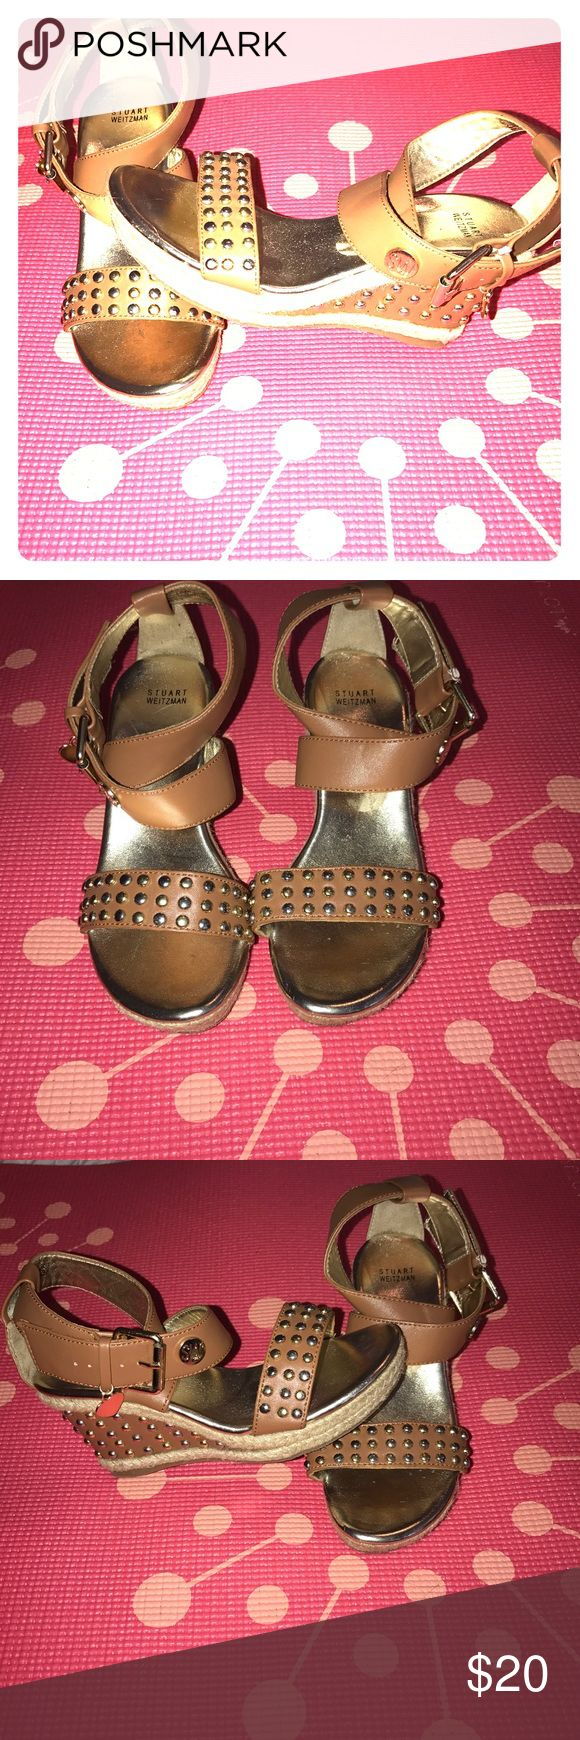 Stuart Weitzman little girls shoes Size 1 Stuart Weitzman heeled sandals little girls  size 1. Gorgeous with dresses, shorts, capris.  For the little diva out there, she will love her new pear of high heeled shoes. Stuart Weitzman Shoes